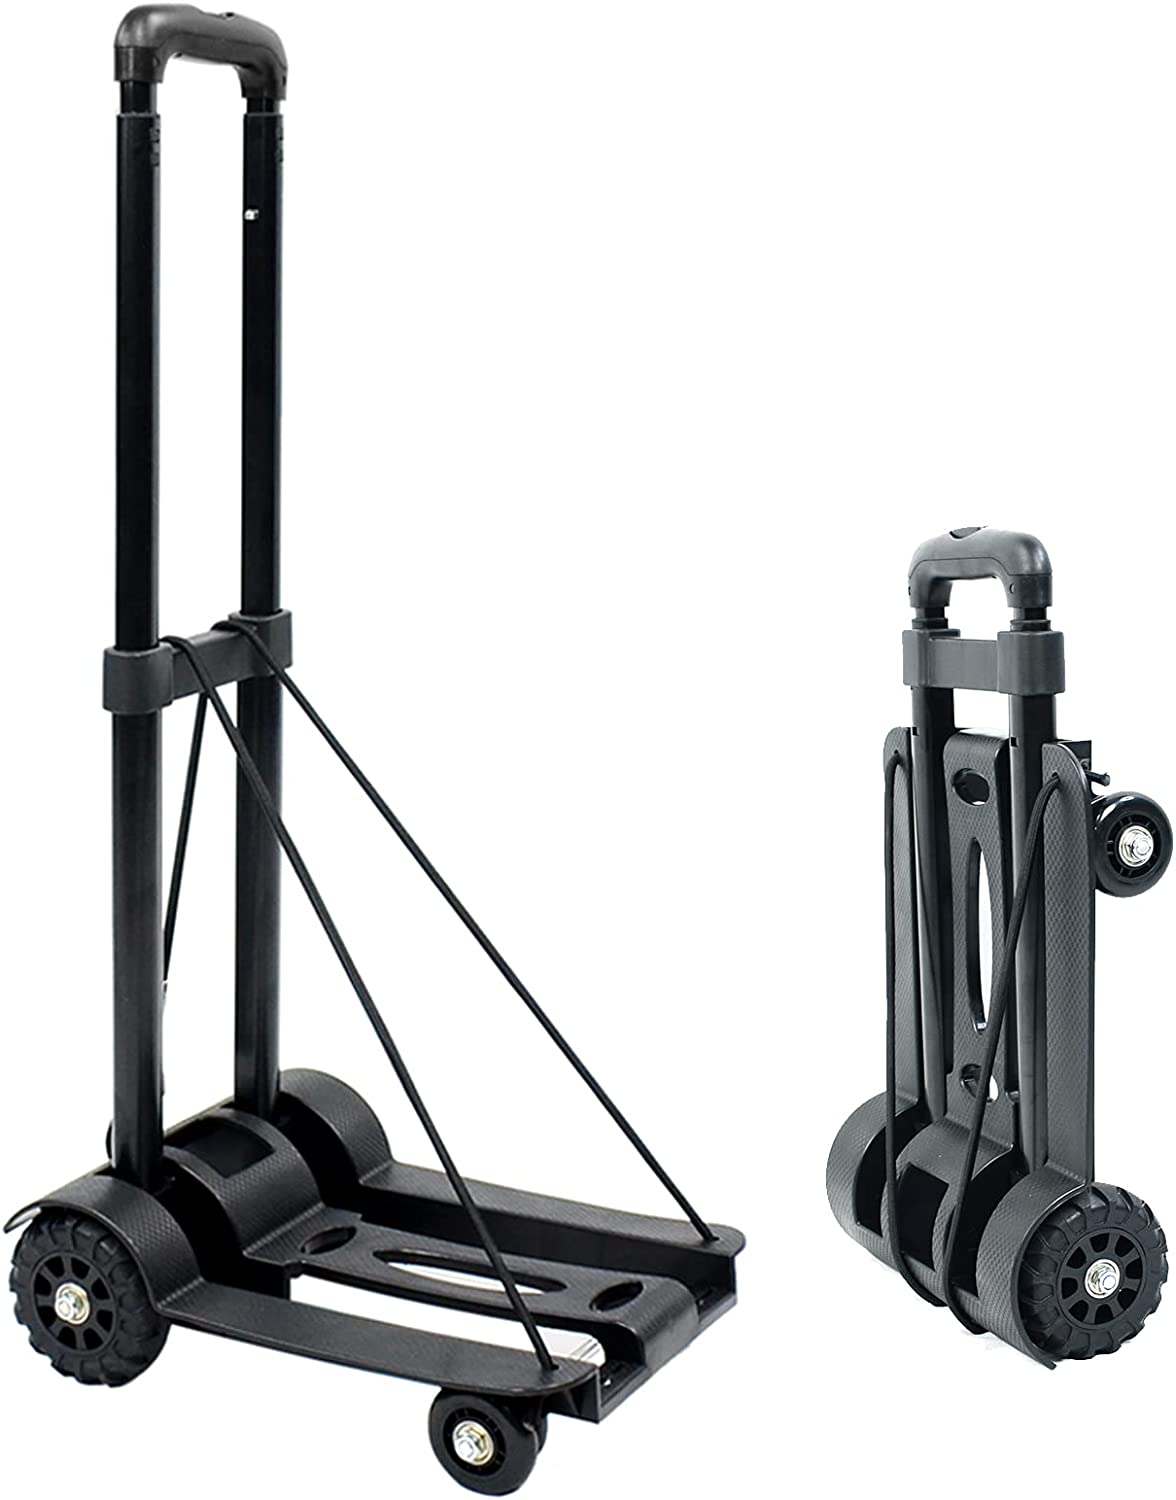 MAYQMAY 165bs/75KG 4 Wheels Compact Folding Portable Luggage Cart Trolley Cart Folding Hand Truck, with Binding Belt for Shopping, Camping, Fishing, Carrying Travel Goods, Garden Utilty, Black